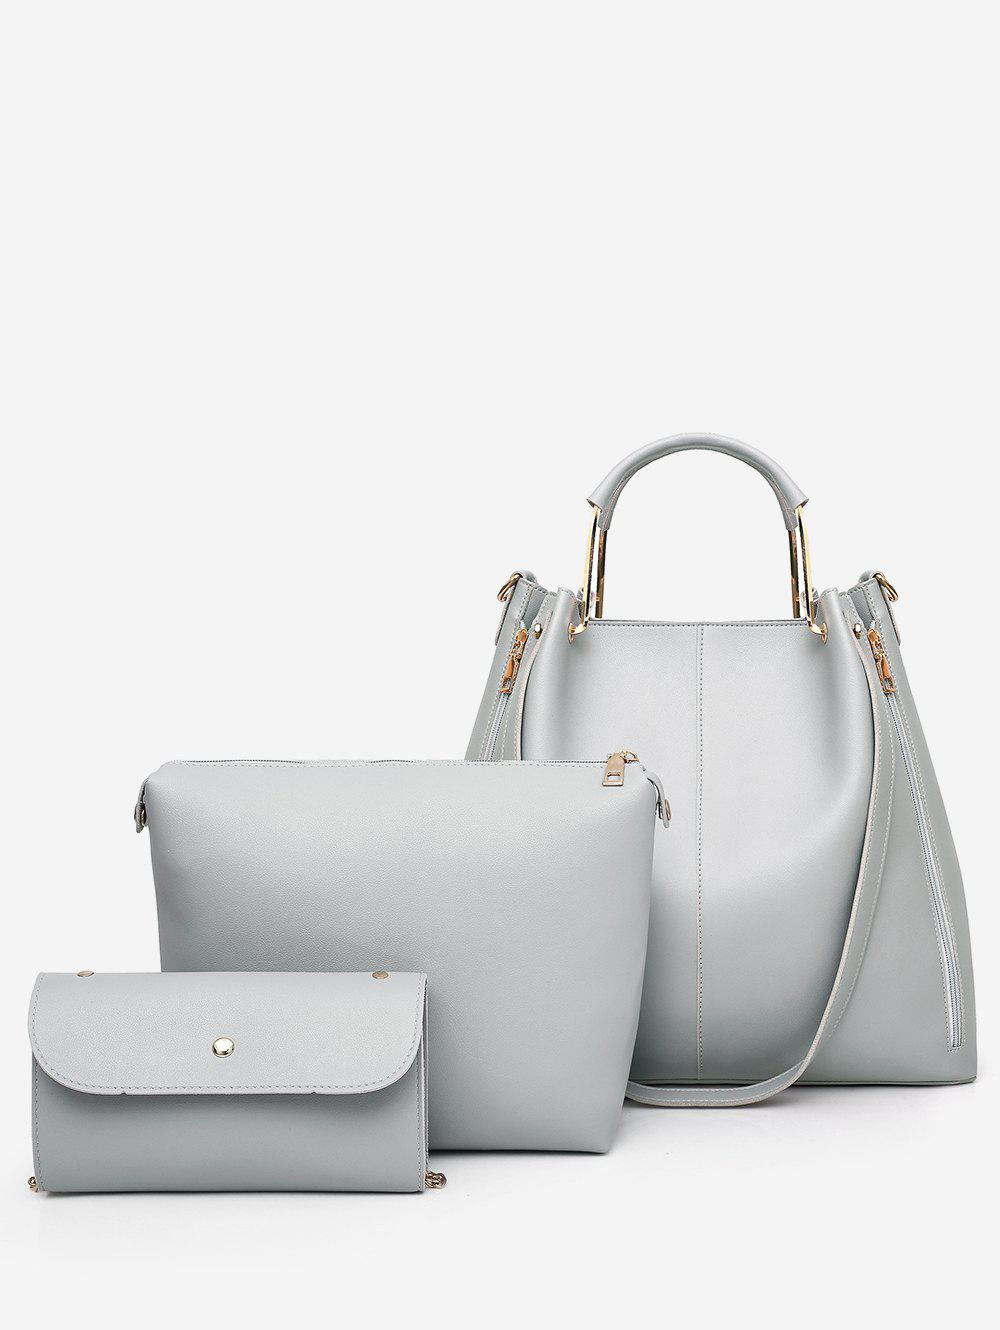 Top Handle Faux Leather Multi Functions 3 Pieces Tote Bag Set - GRAY